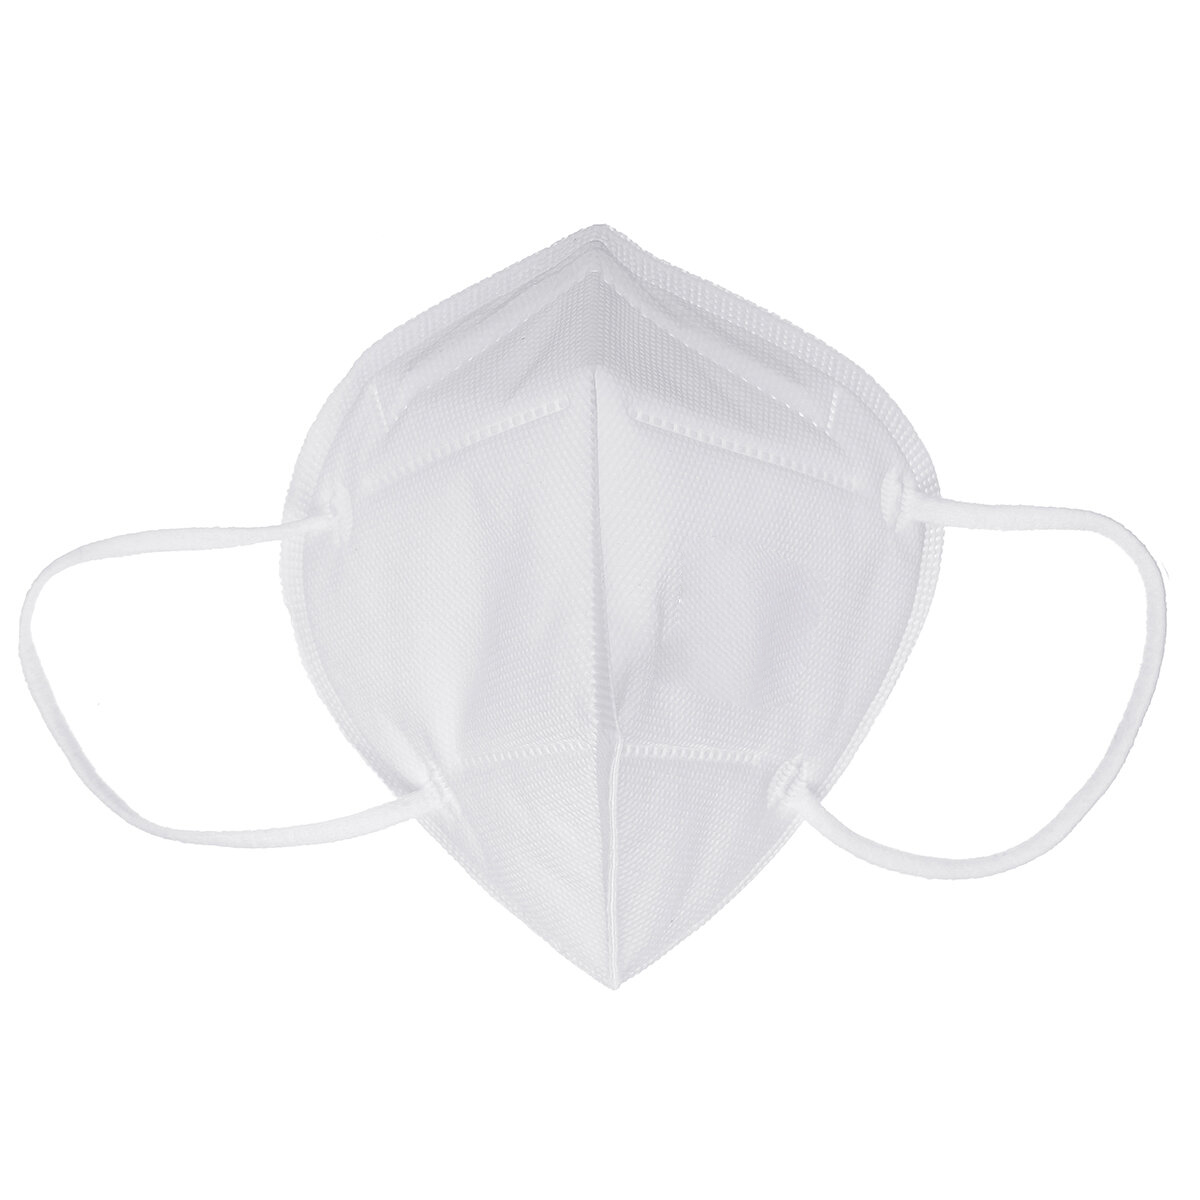 BLACK FRIDAY - SEE PRICE IN CART - Opsial KN95 Respirator Mask, 20/BX